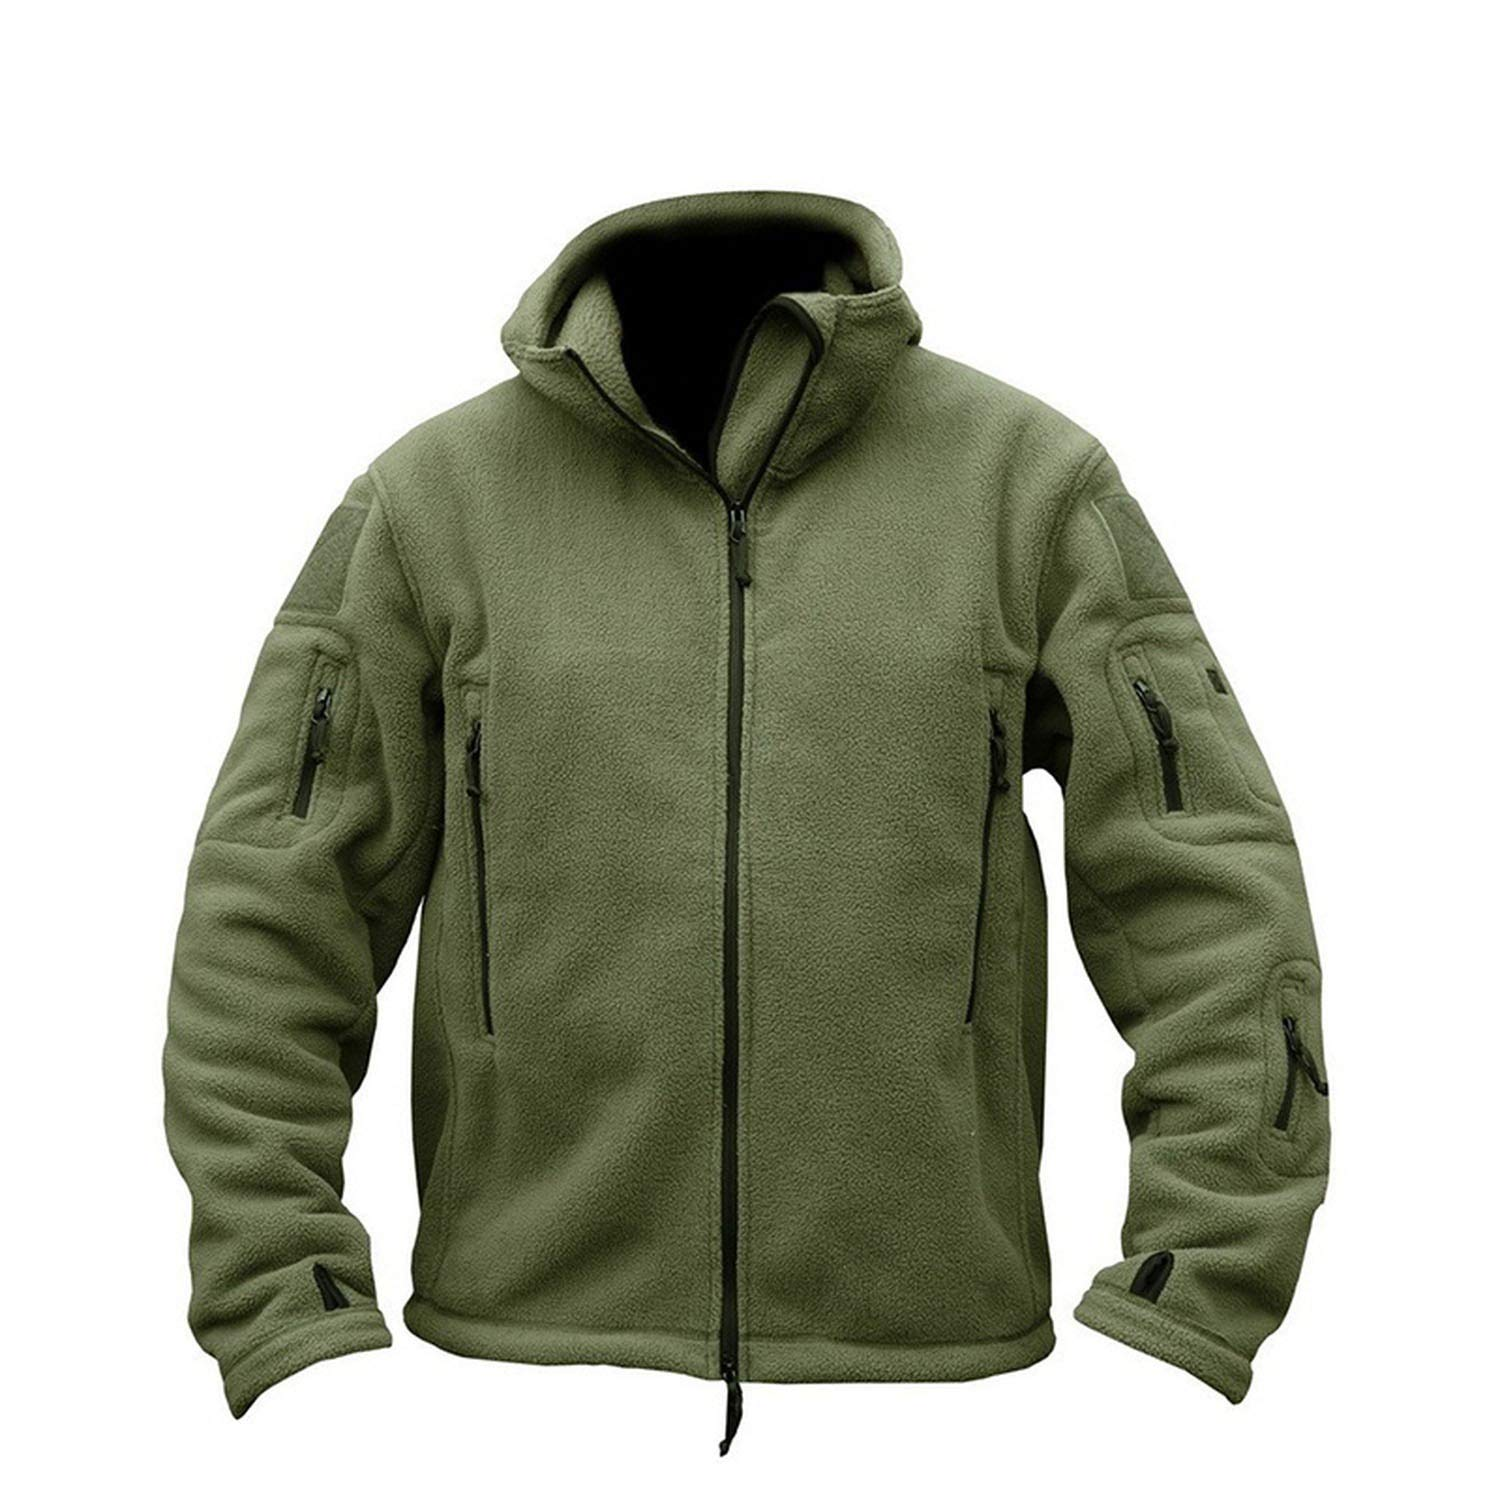 3XL Military Fleece Jacket Warm Men Navy Thermal Hooded Jacket Coat Clothes e0ea5e23a